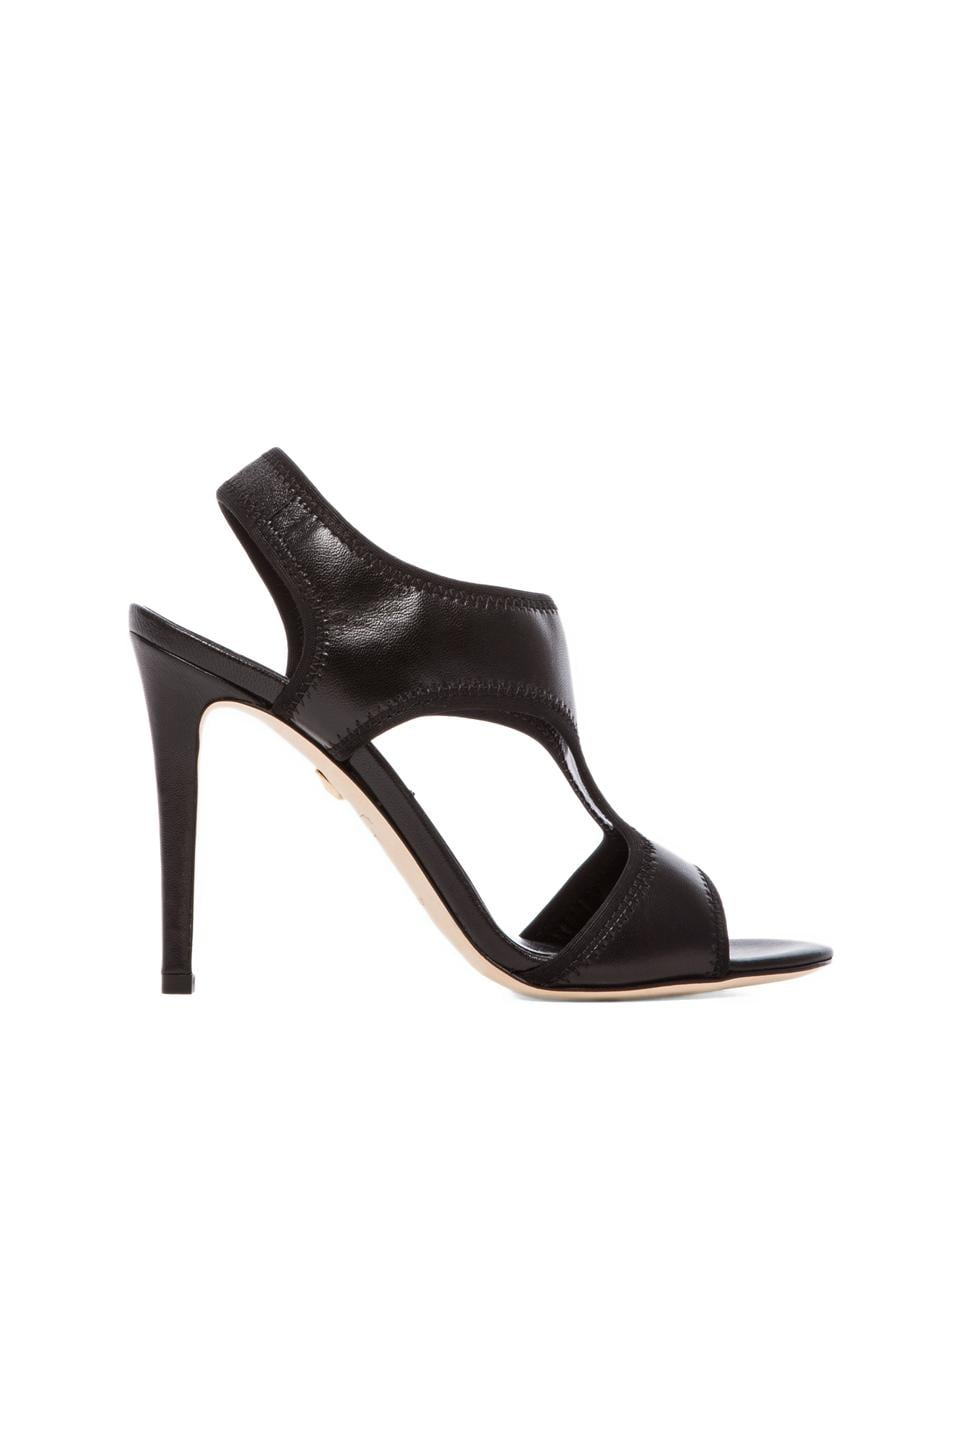 Diane von Furstenberg Urban Strappy Pump in Black & Black